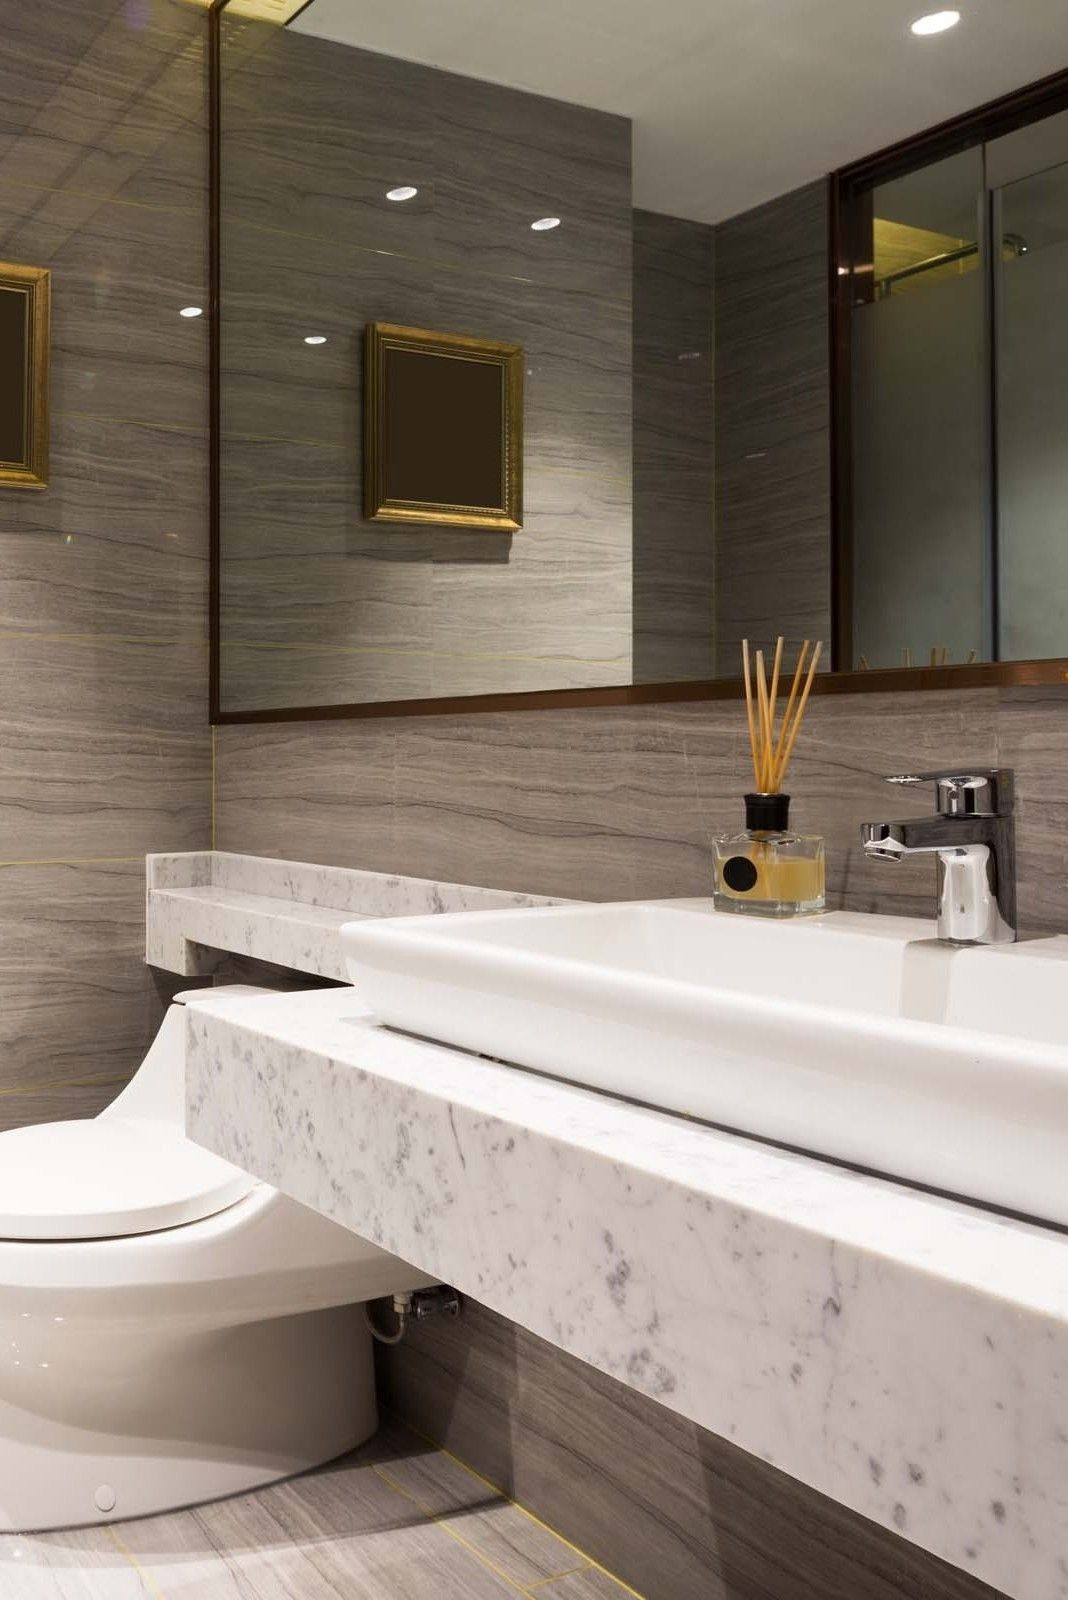 Vanities Cabinets Remodel Sink Cabinets Faucets Renovations Countertops Furniture Fixtures Small Modern Minimalist Luxury Walls Marble Quartz Di 2020